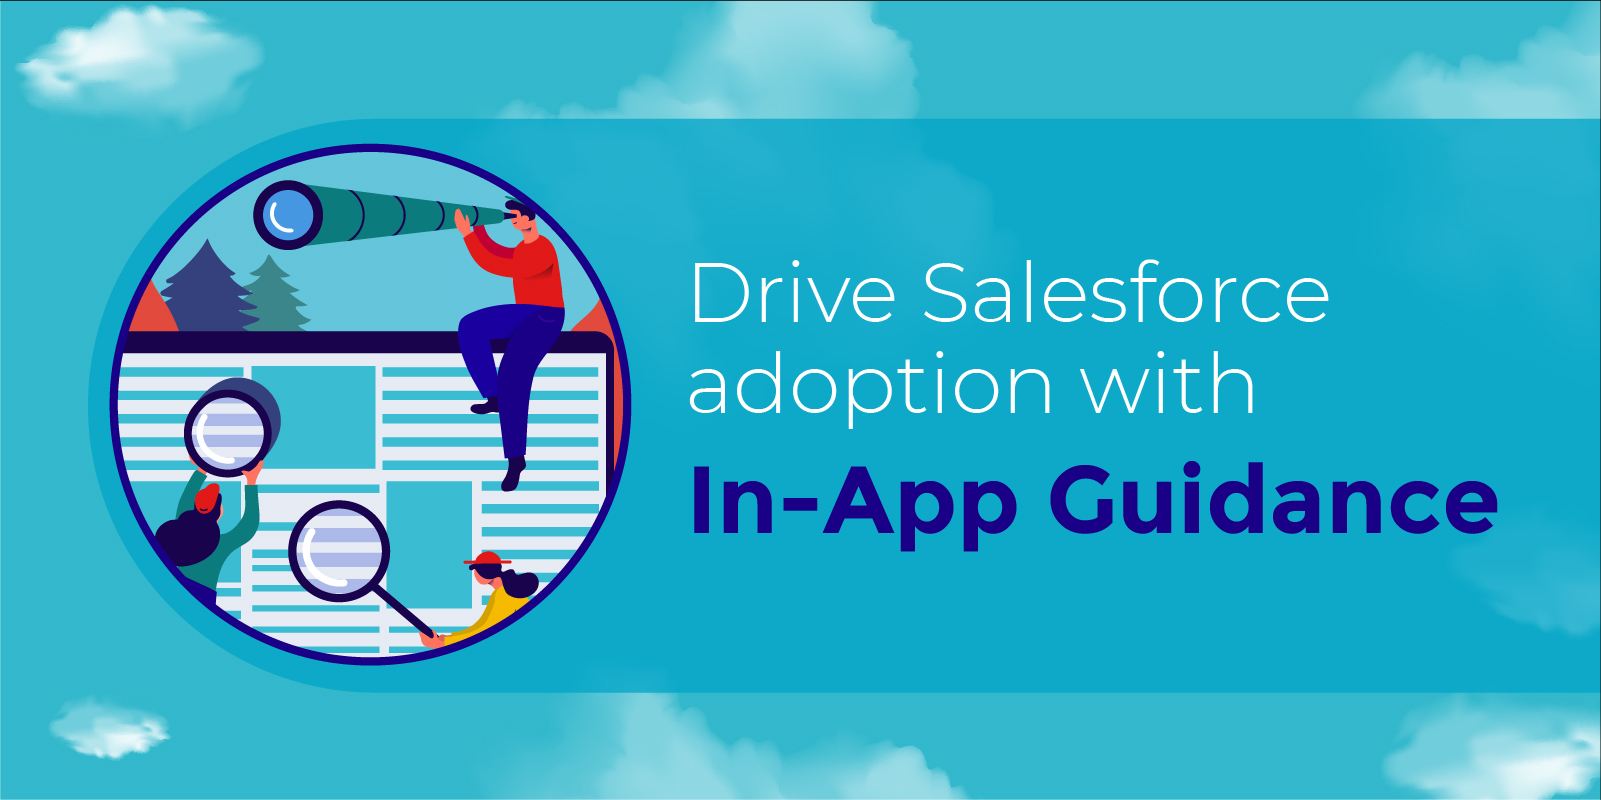 Unboxing Salesforce Winter '20 edition| Accelerate the adoption with Salesforce In-App guidance